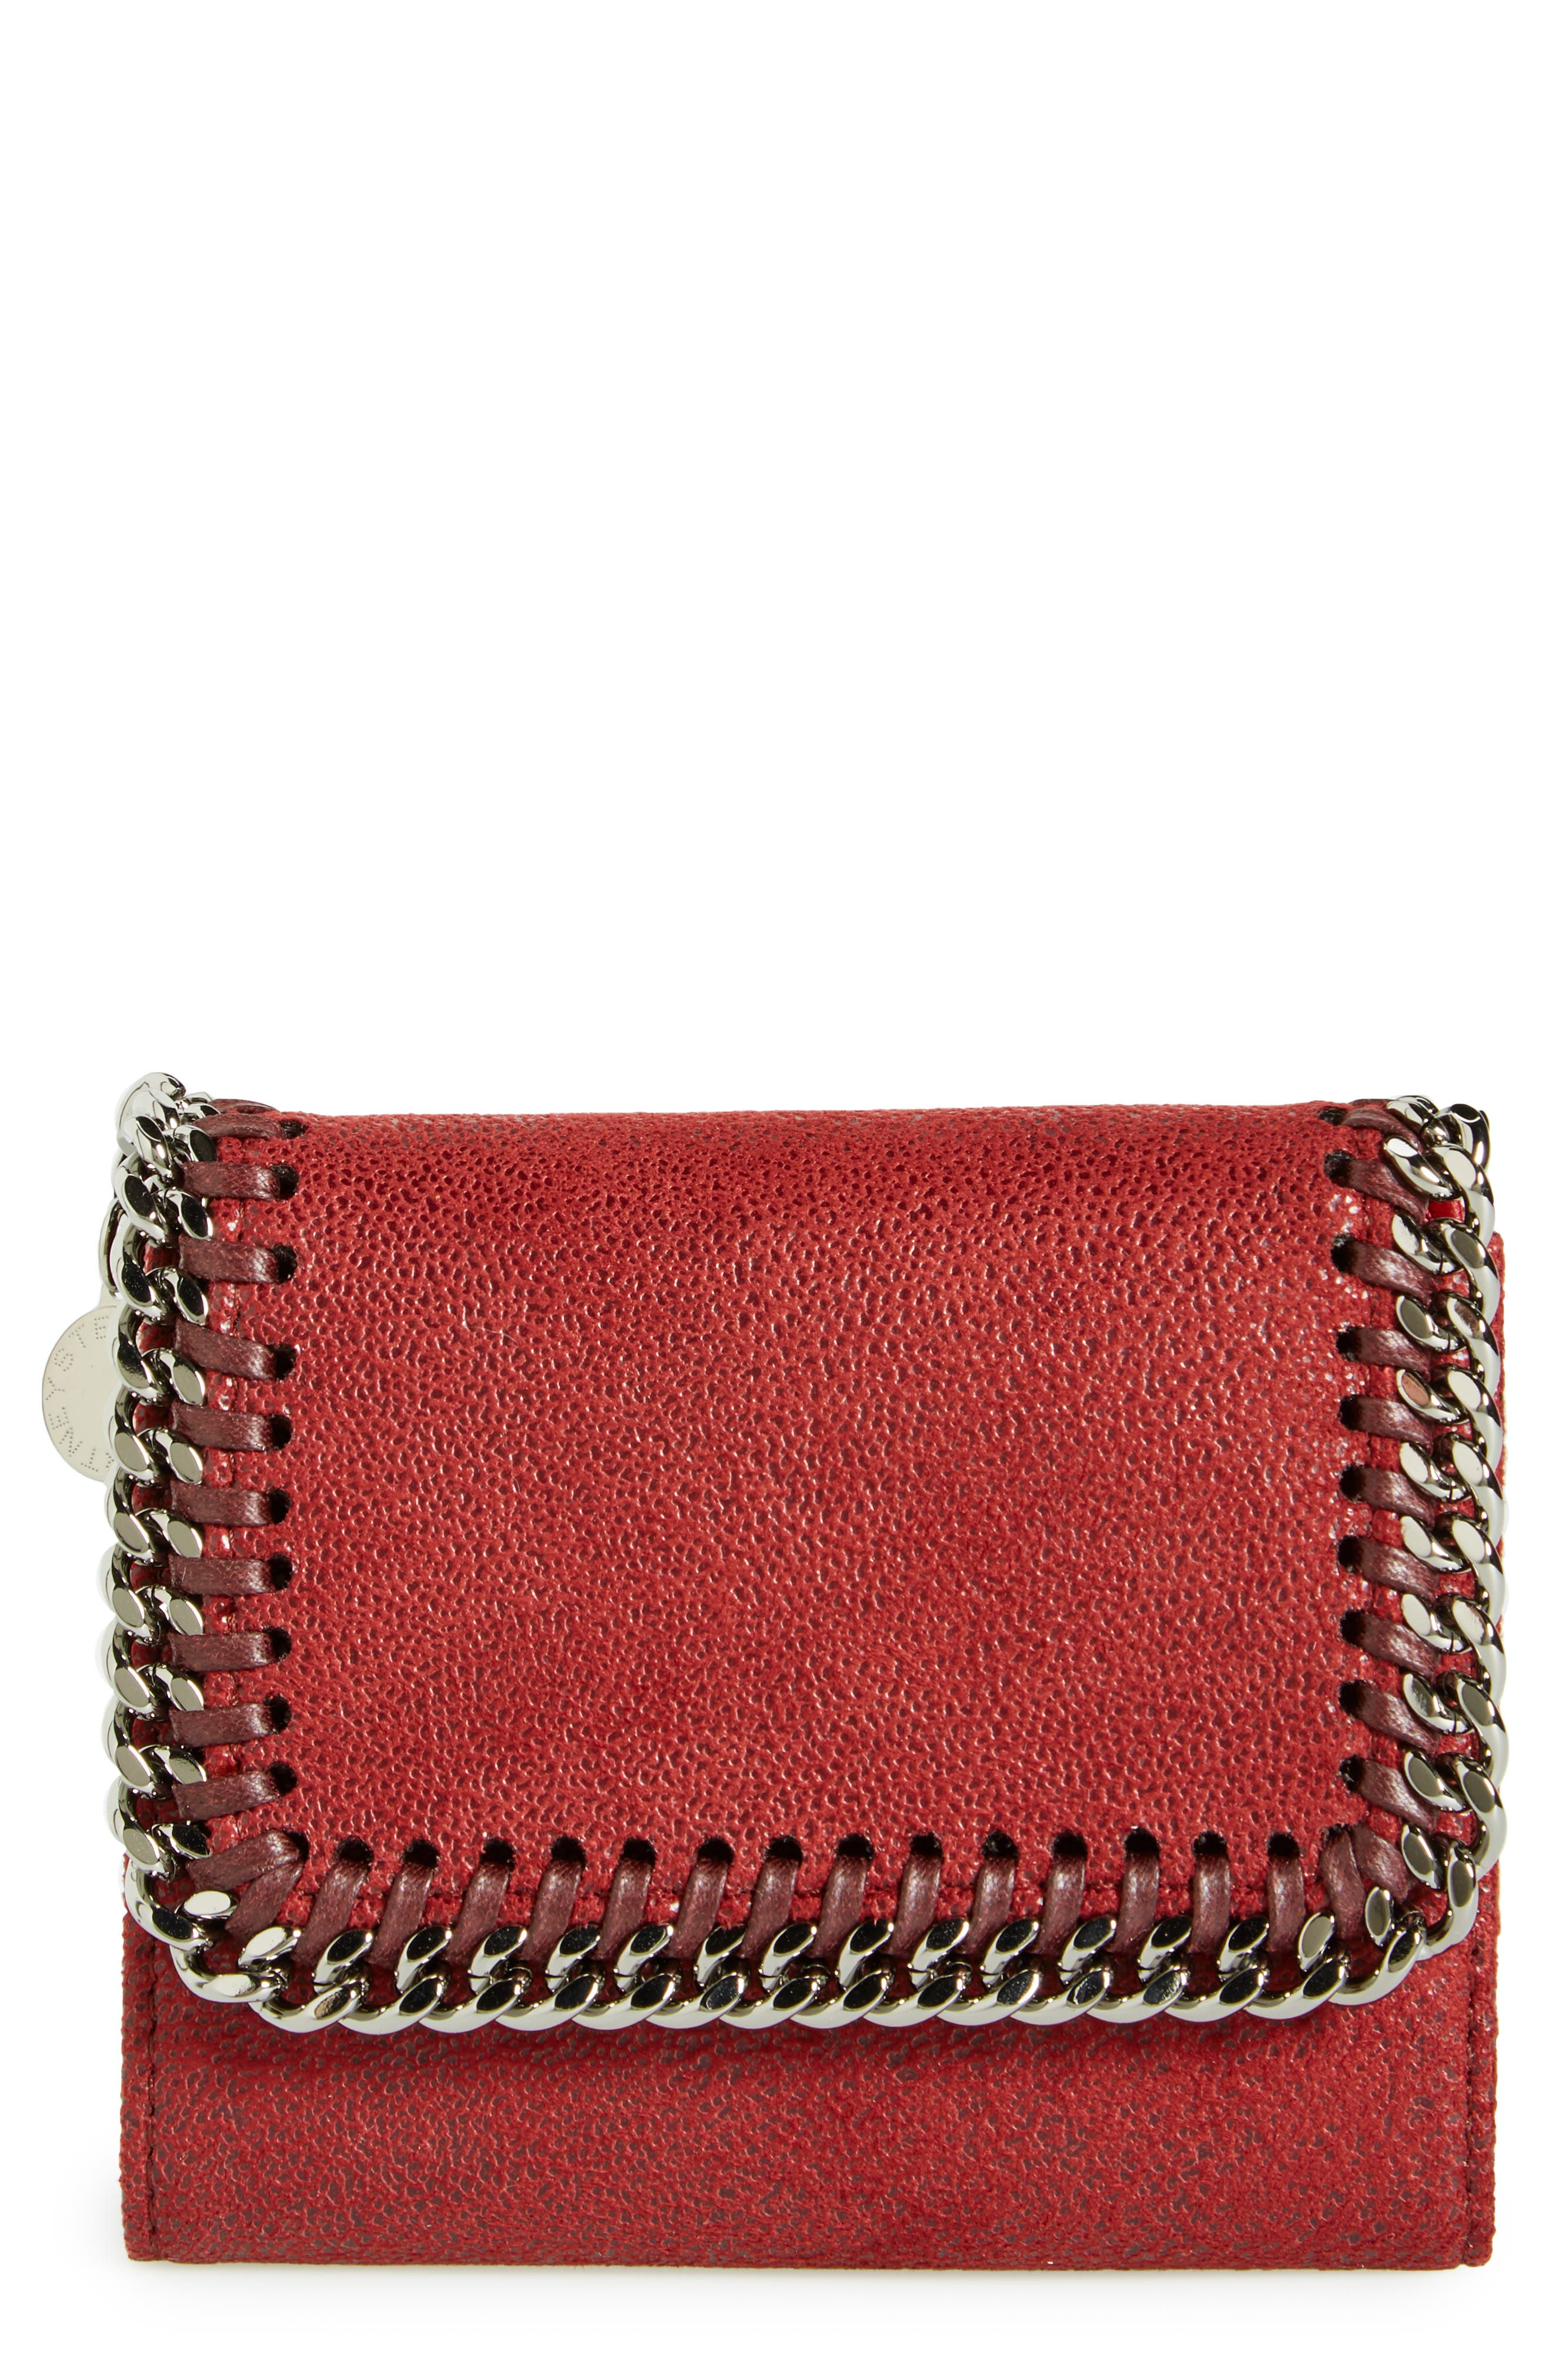 STELLA MCCARTNEY Small Falabella Faux Leather French Wallet